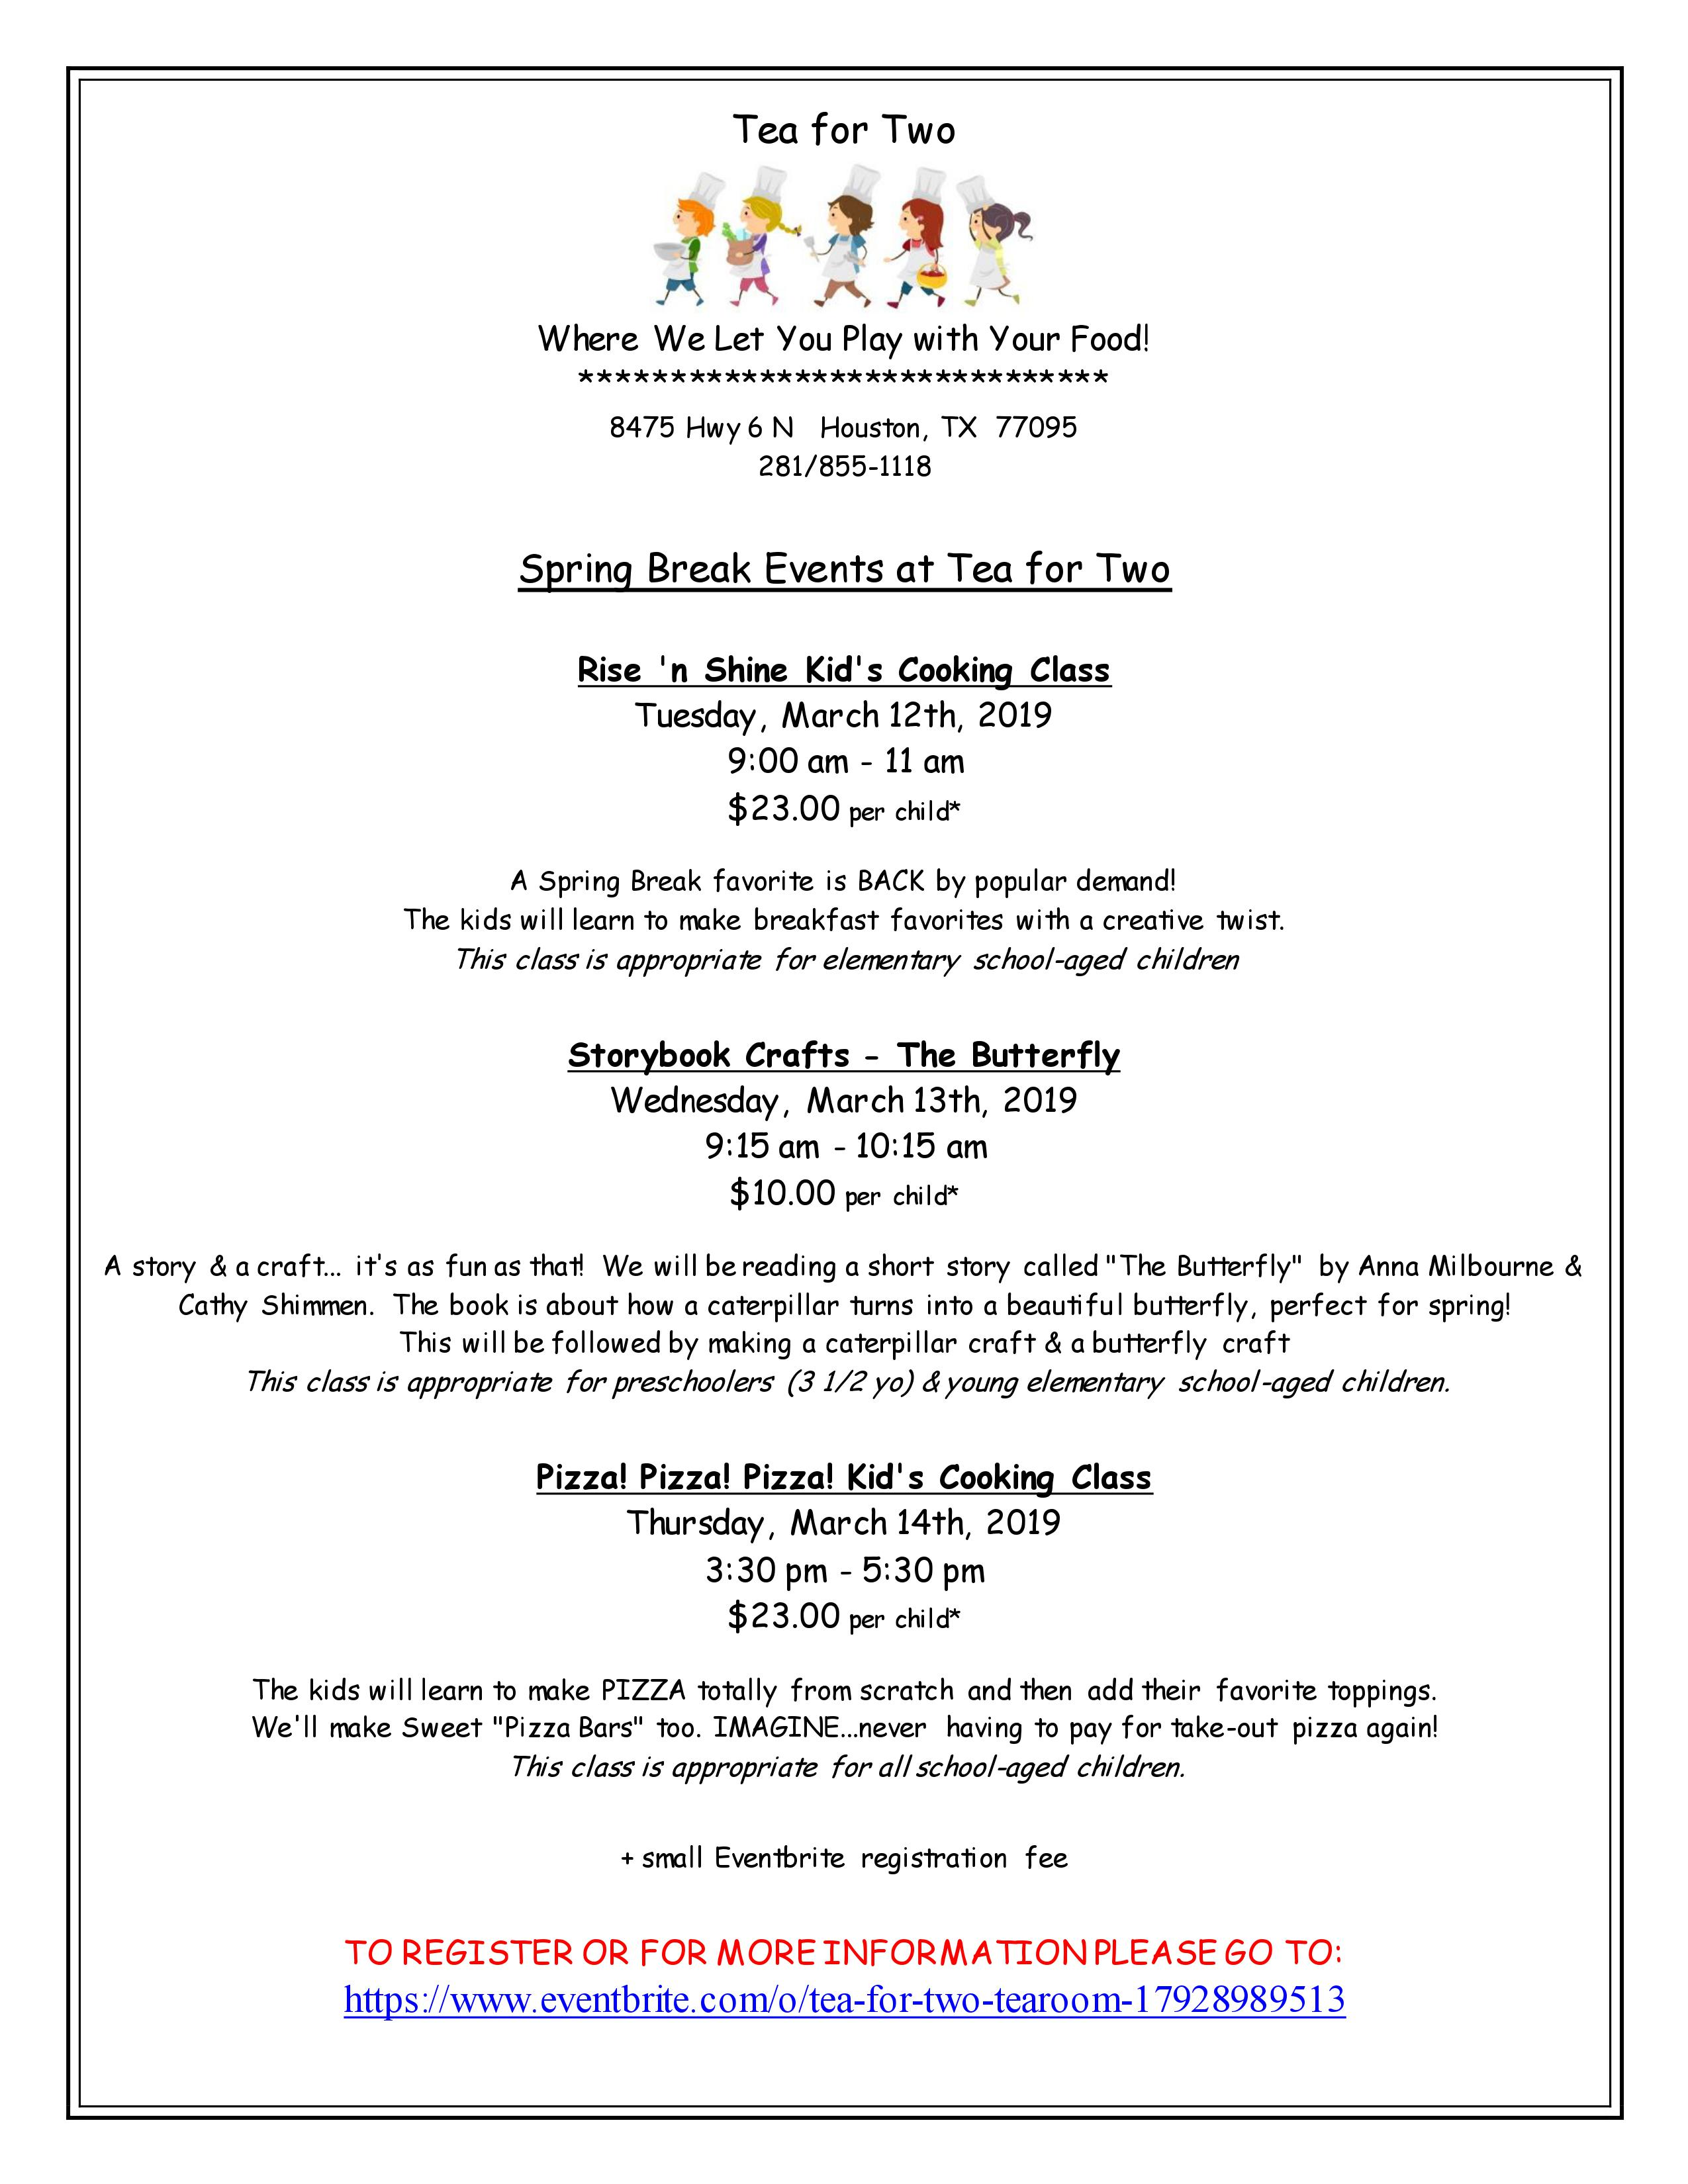 Tea For Two Event